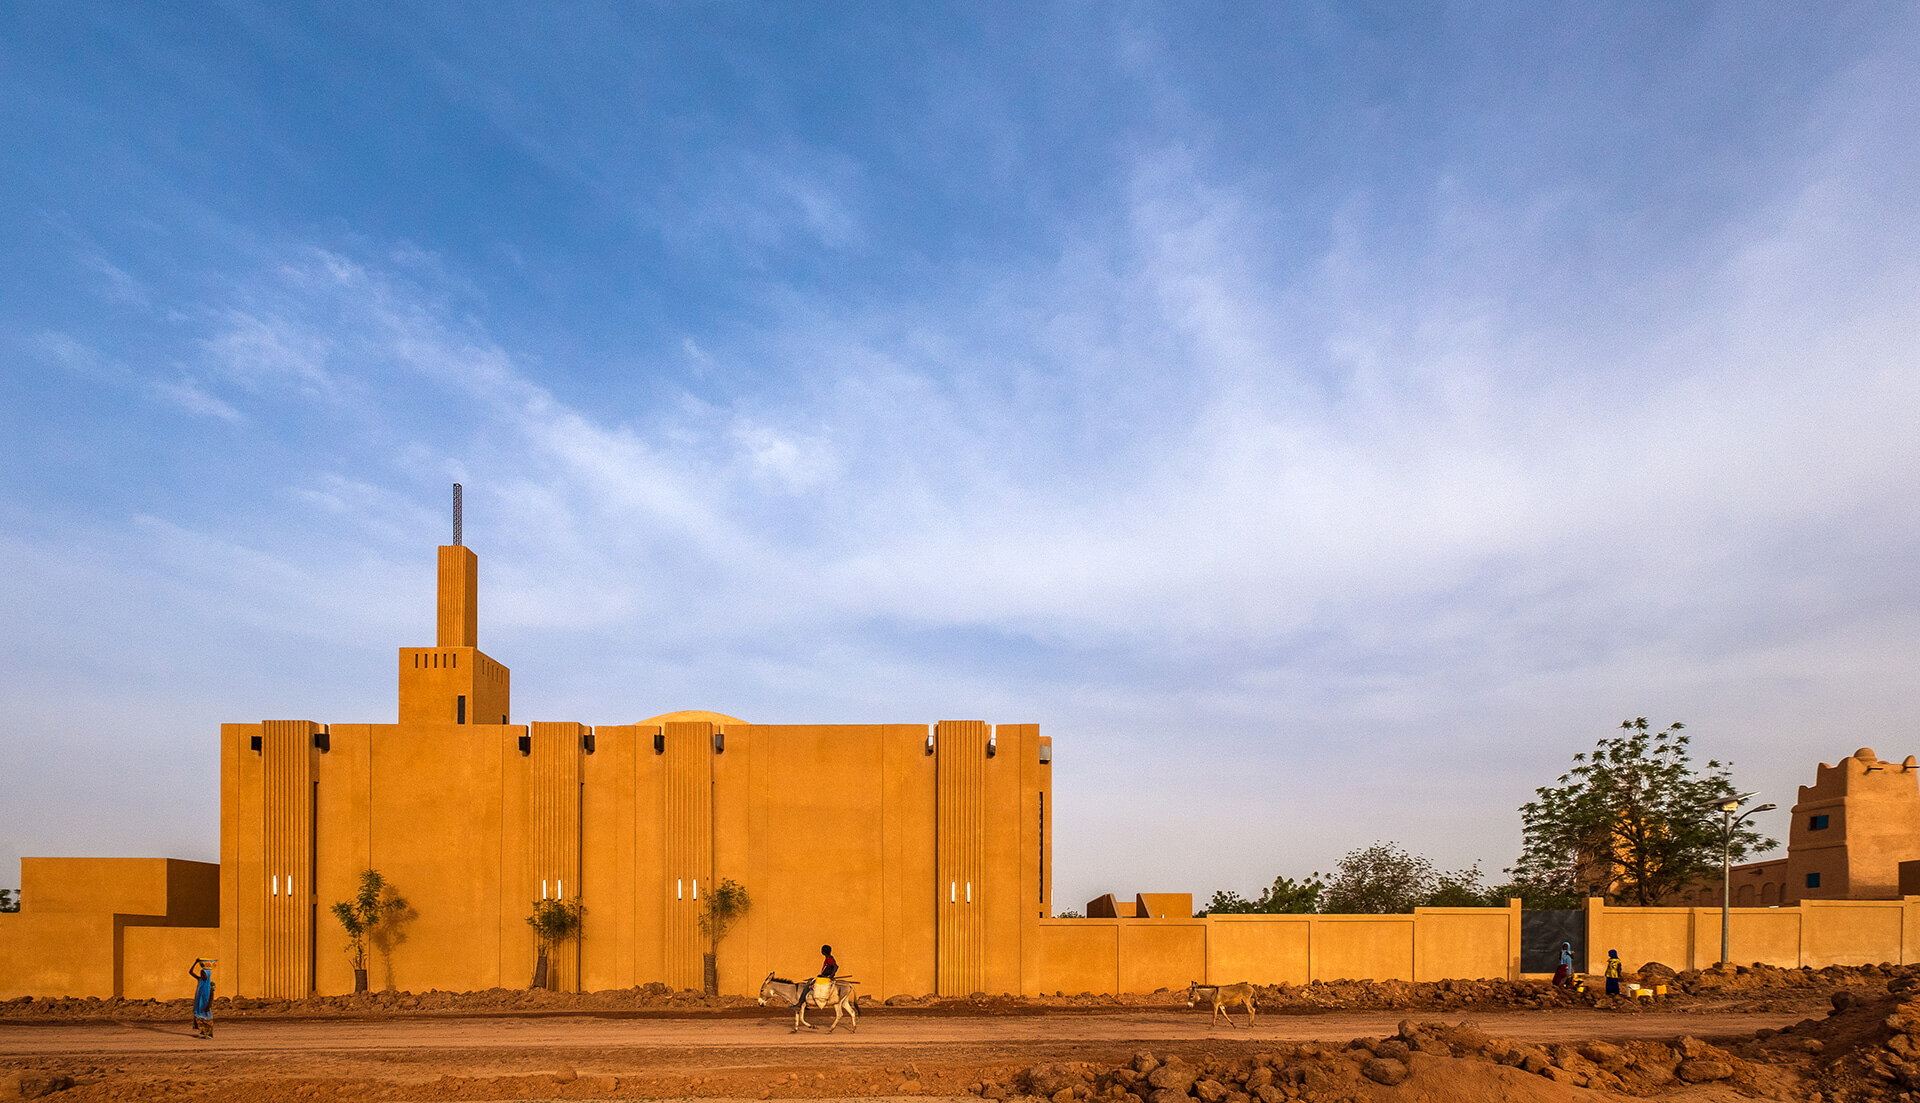 The new building in turn re-interprets traditional Hausa mosque organization with contemporary structural support and detailing |Yasaman Esmaili | Studio Chahar | STIRworld